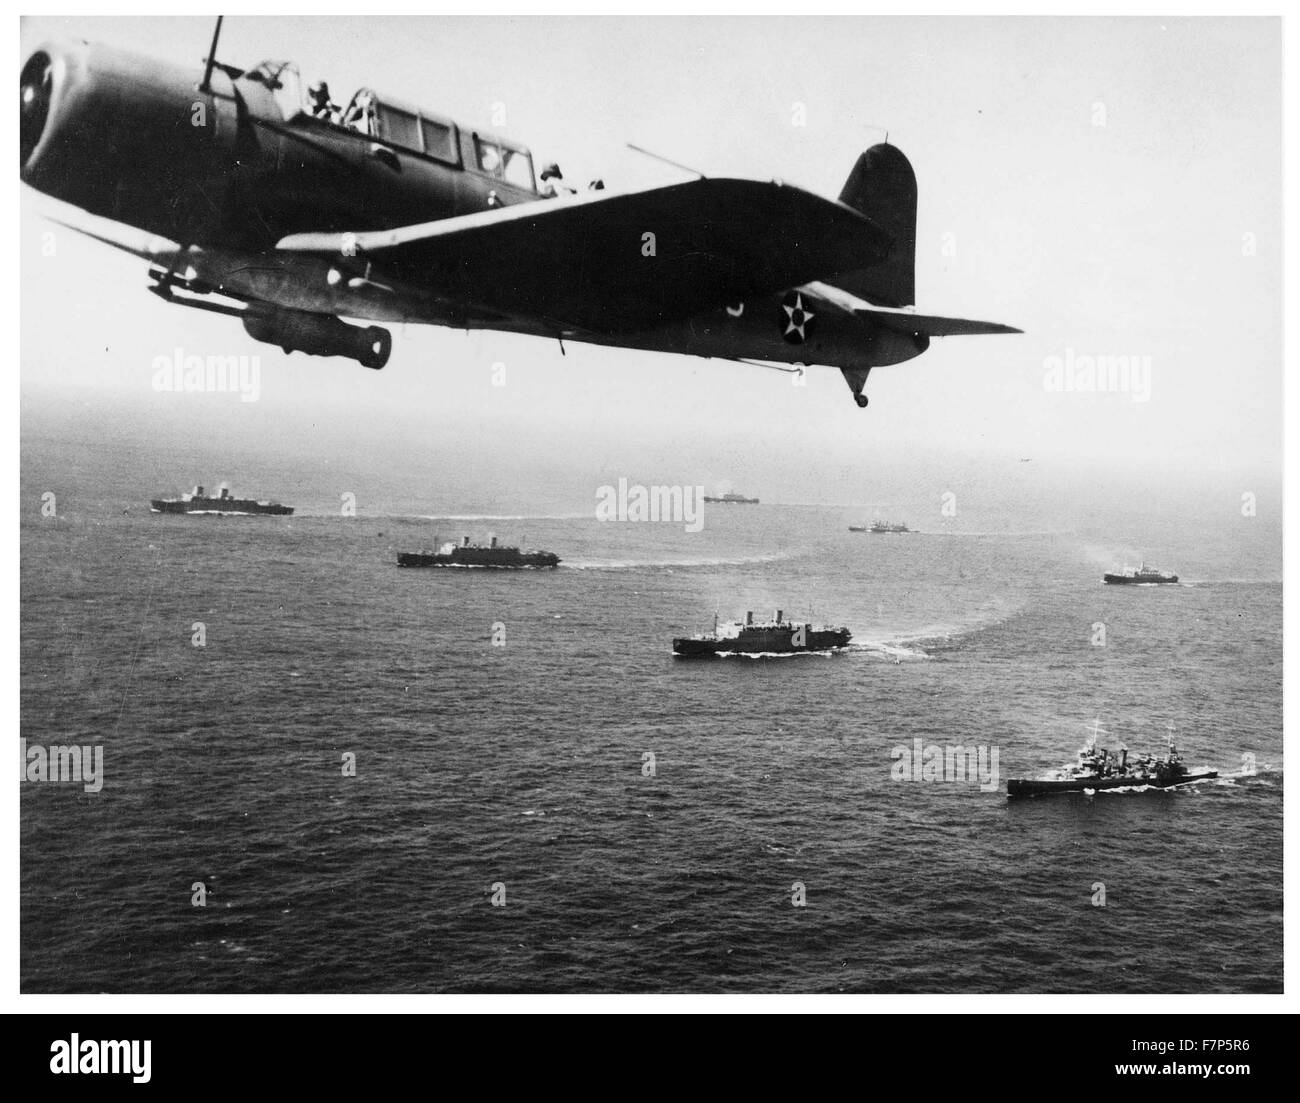 Photograph of a Convoy WS-12 en route to Cape Town, South Africa. Dated 1941 - Stock Image